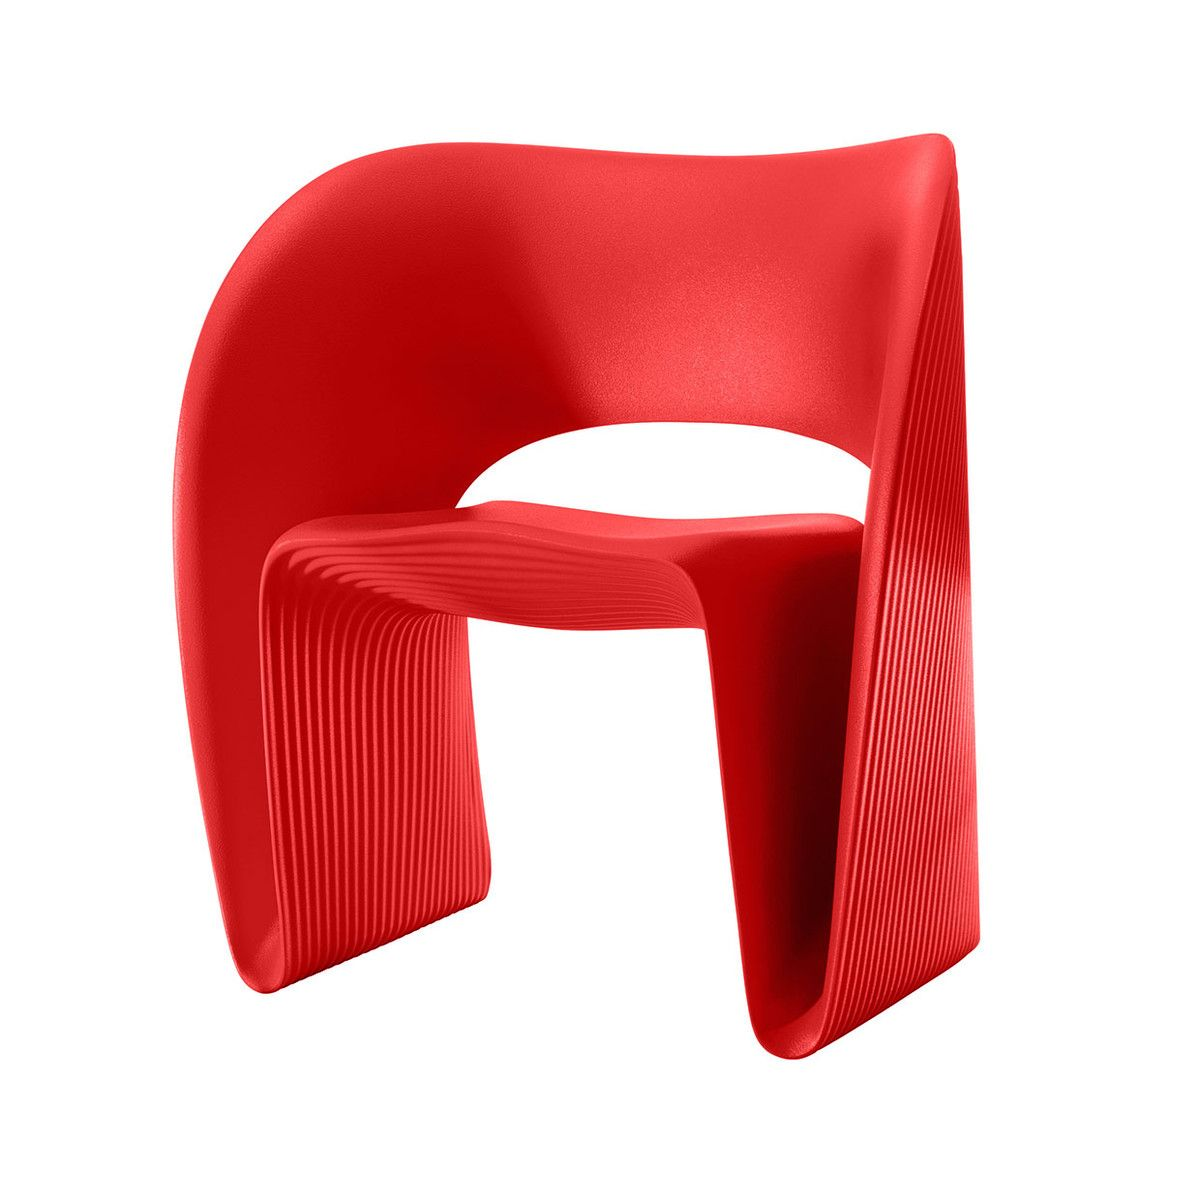 When world famous architect, designer and professor Ron Arad created his Raviolo Chair he had two things in mind: style and function. With its brightly coloured frame and innovative design, it's a joy to sit on, and is designed to be used (and admired) both inside the house or out on the patio. Dinner party or garden party, the guest of honour has arrived.    eu.Fab.com | Raviolo Chair Red